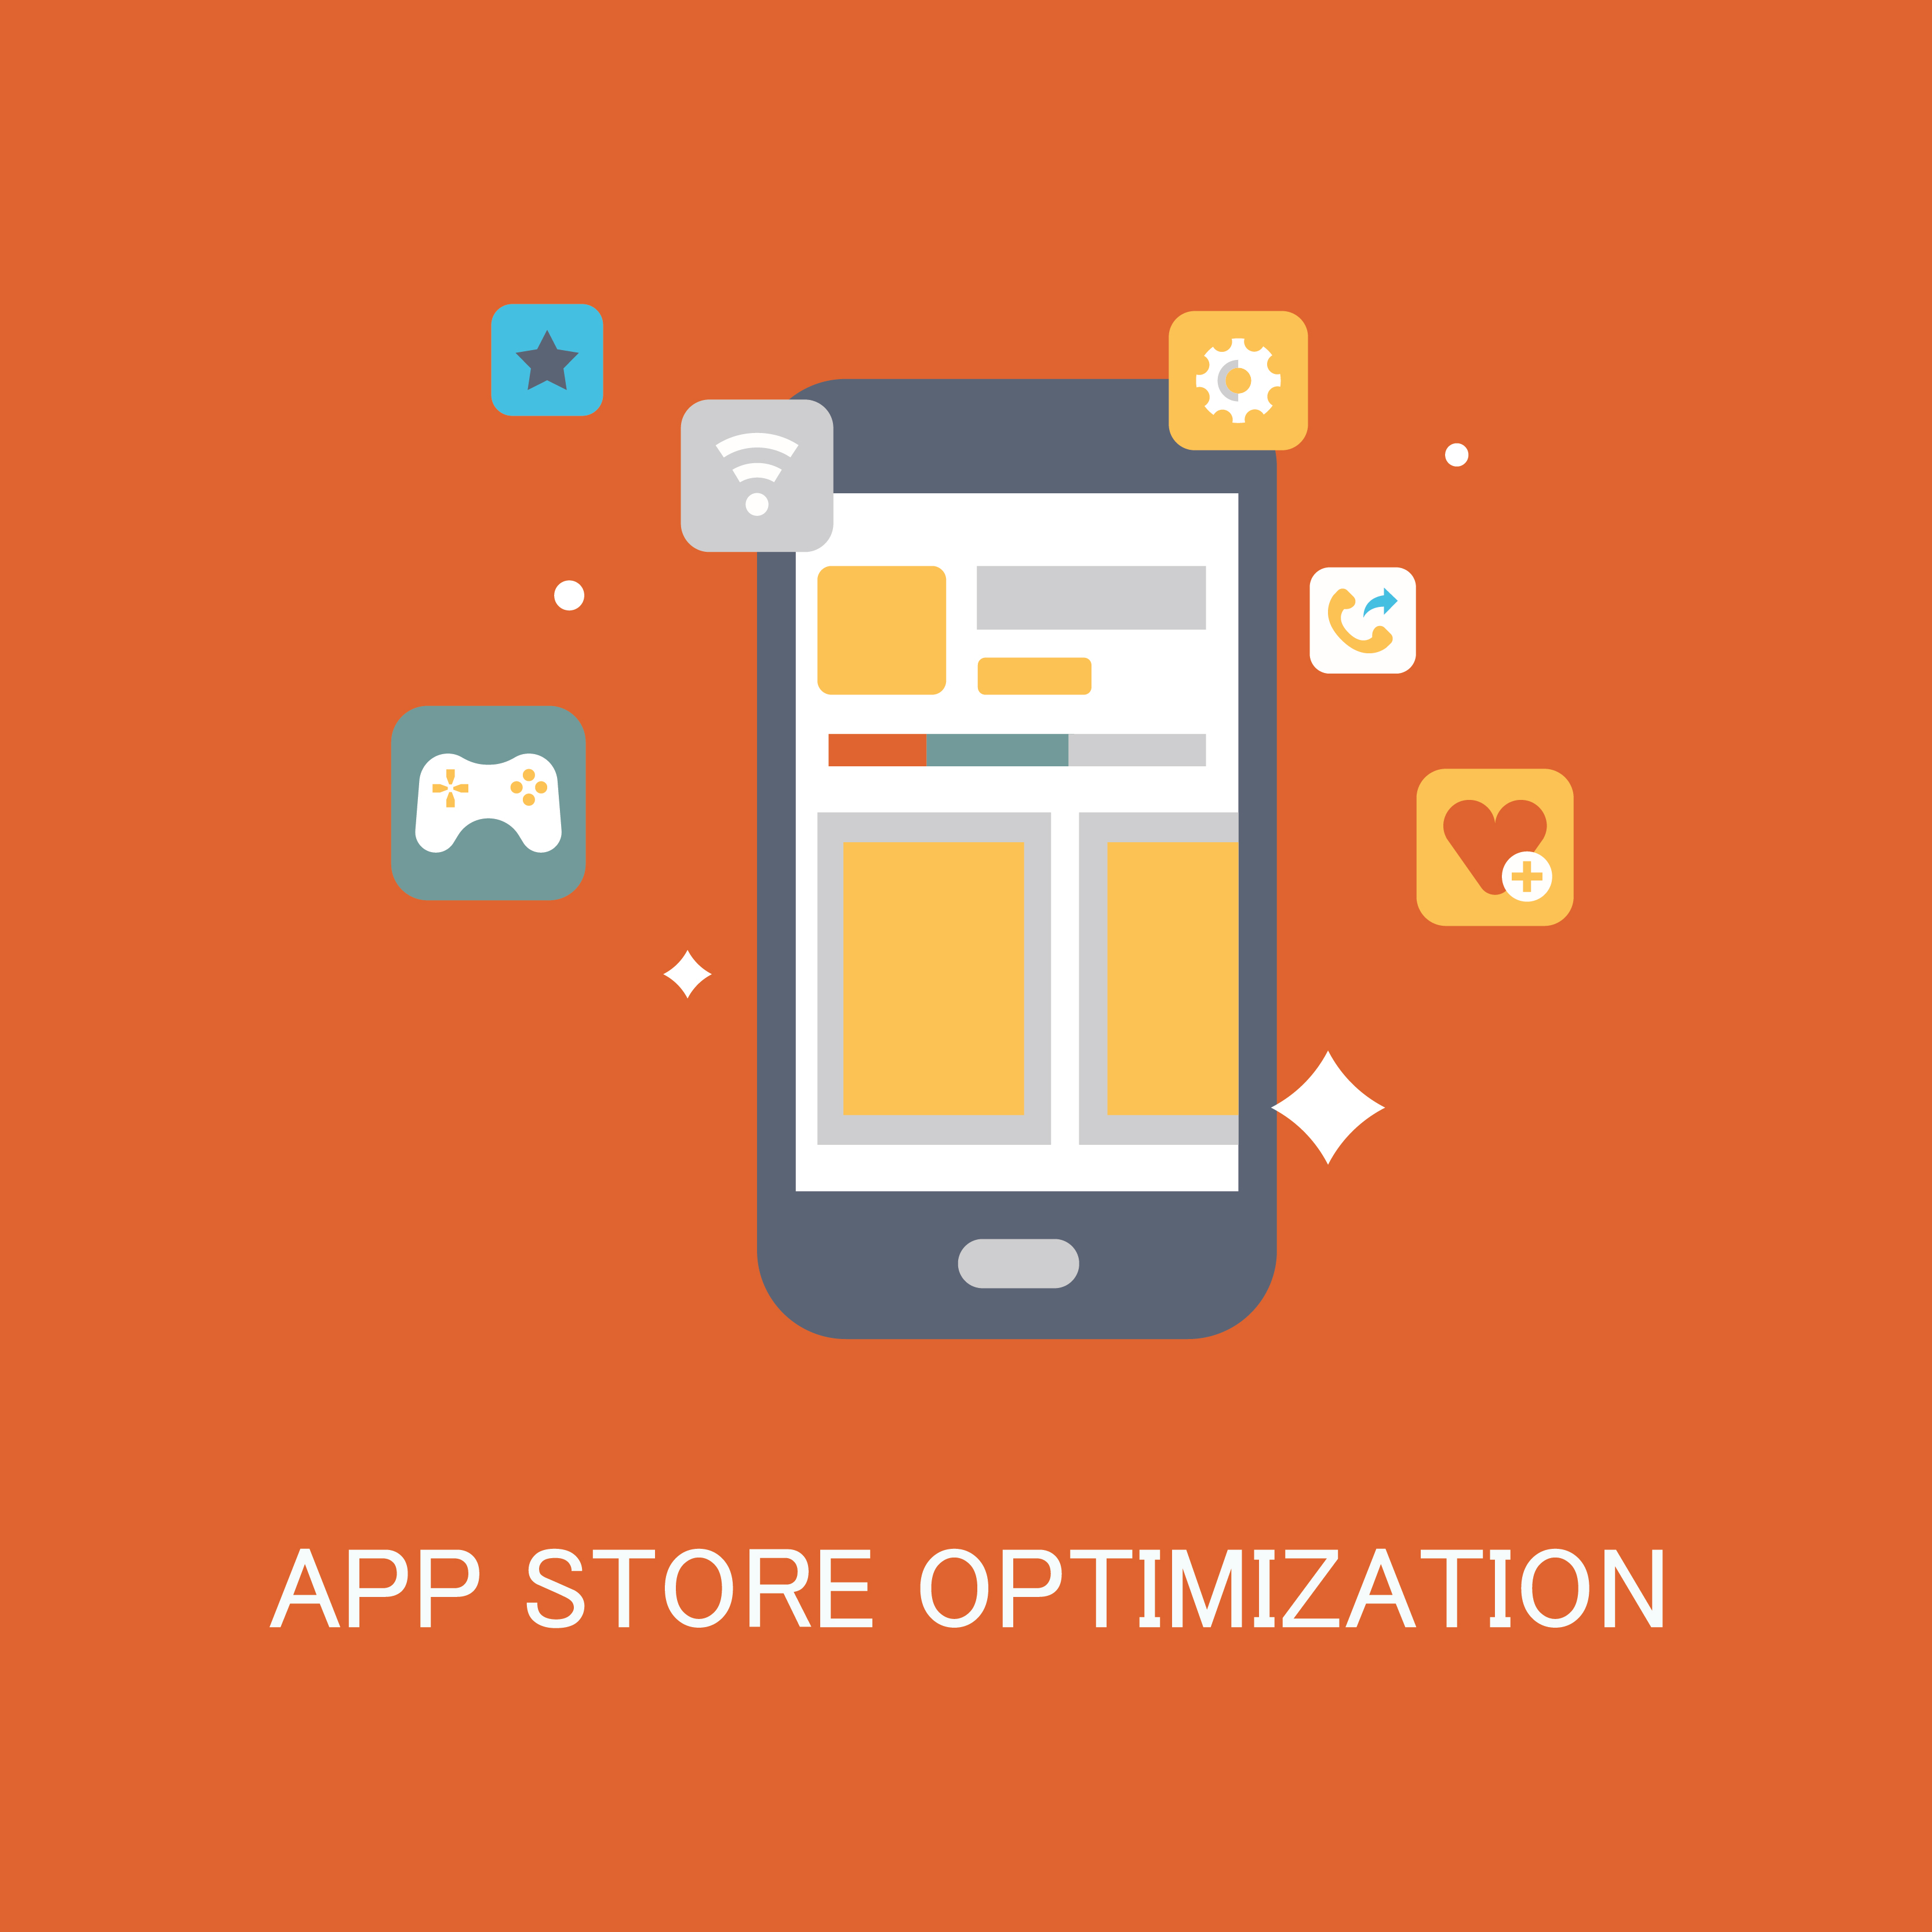 App Store Optimization- 6 Top Strategies To Boost Your App Marketing and Improve Ranking